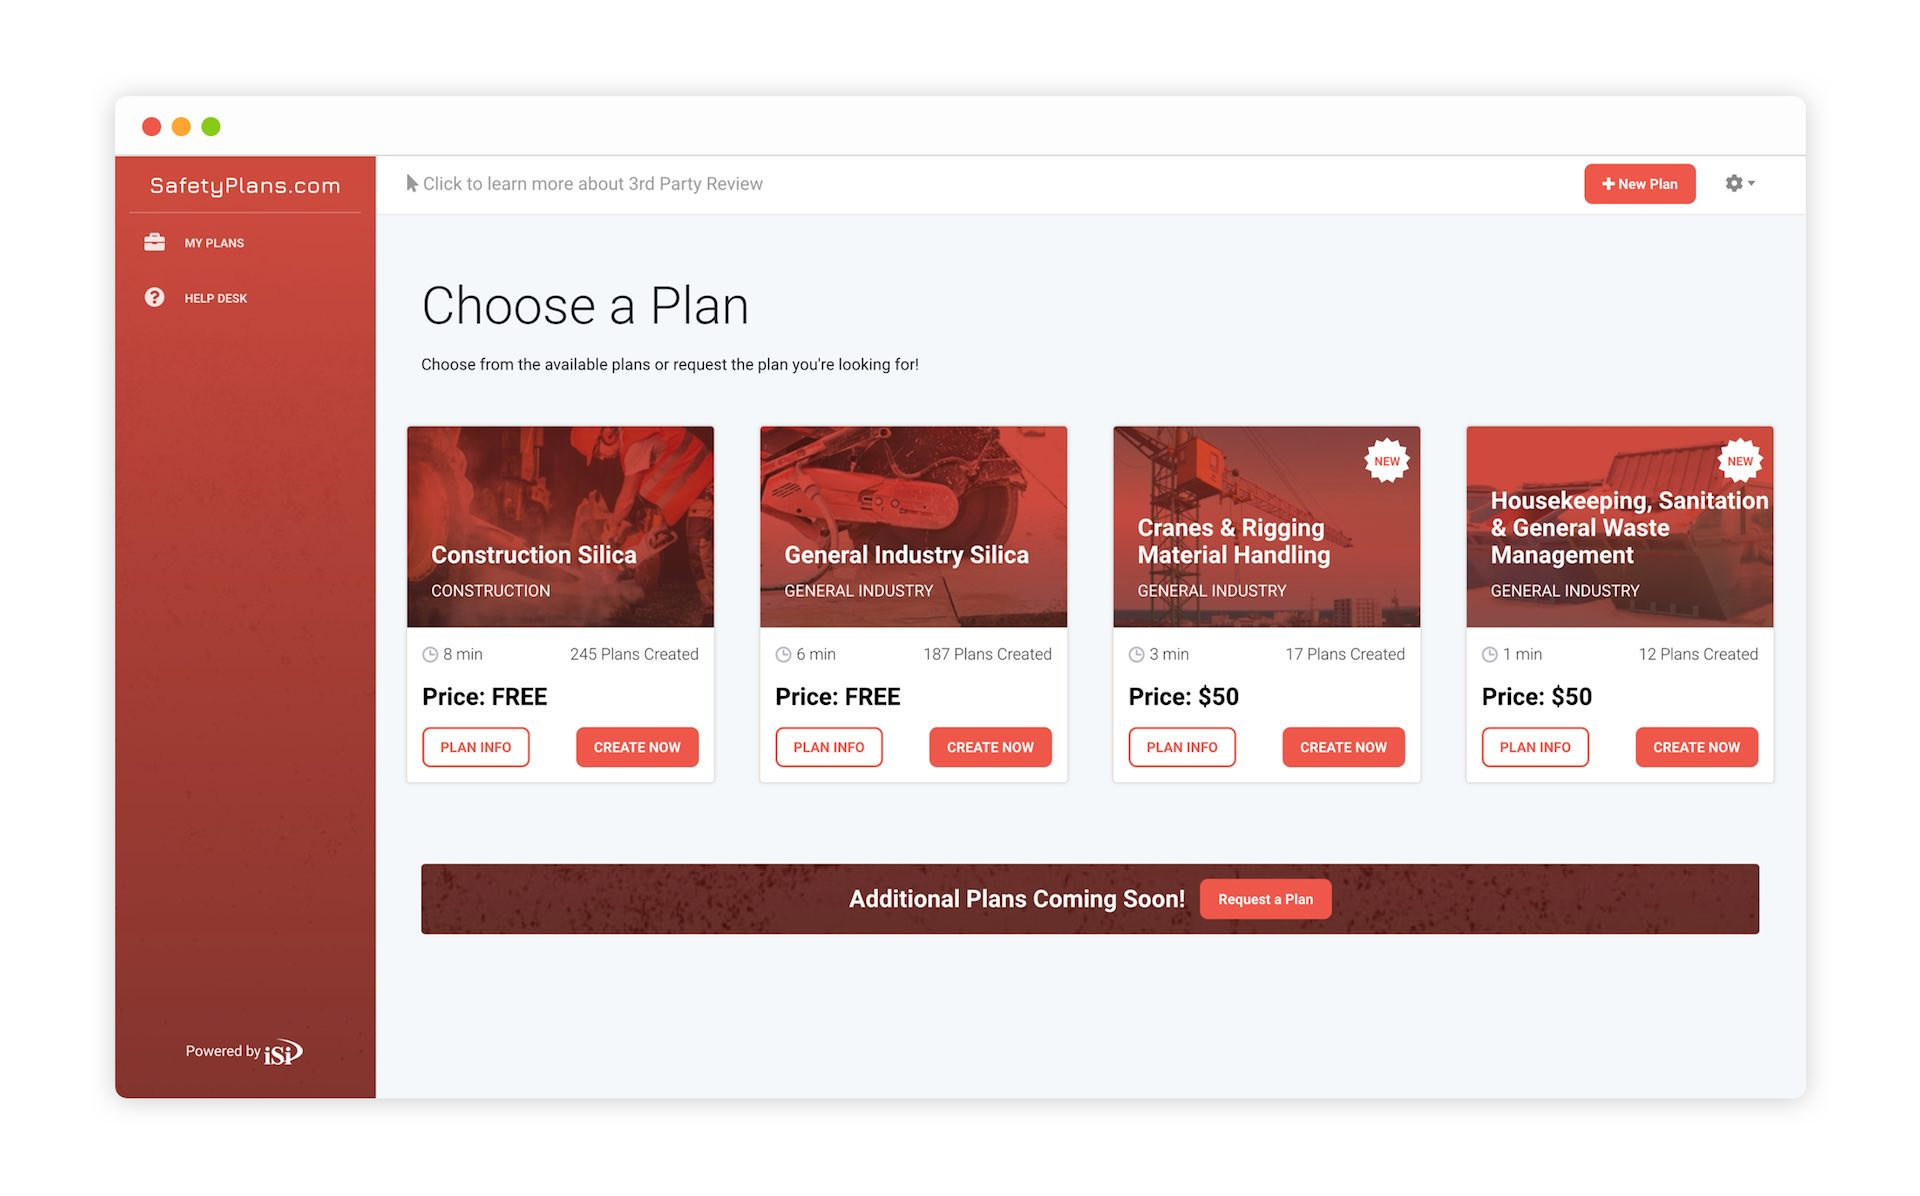 A View of a Screen Inside of SafetyPlans.com for iSi Environmental by Moonbase Labs